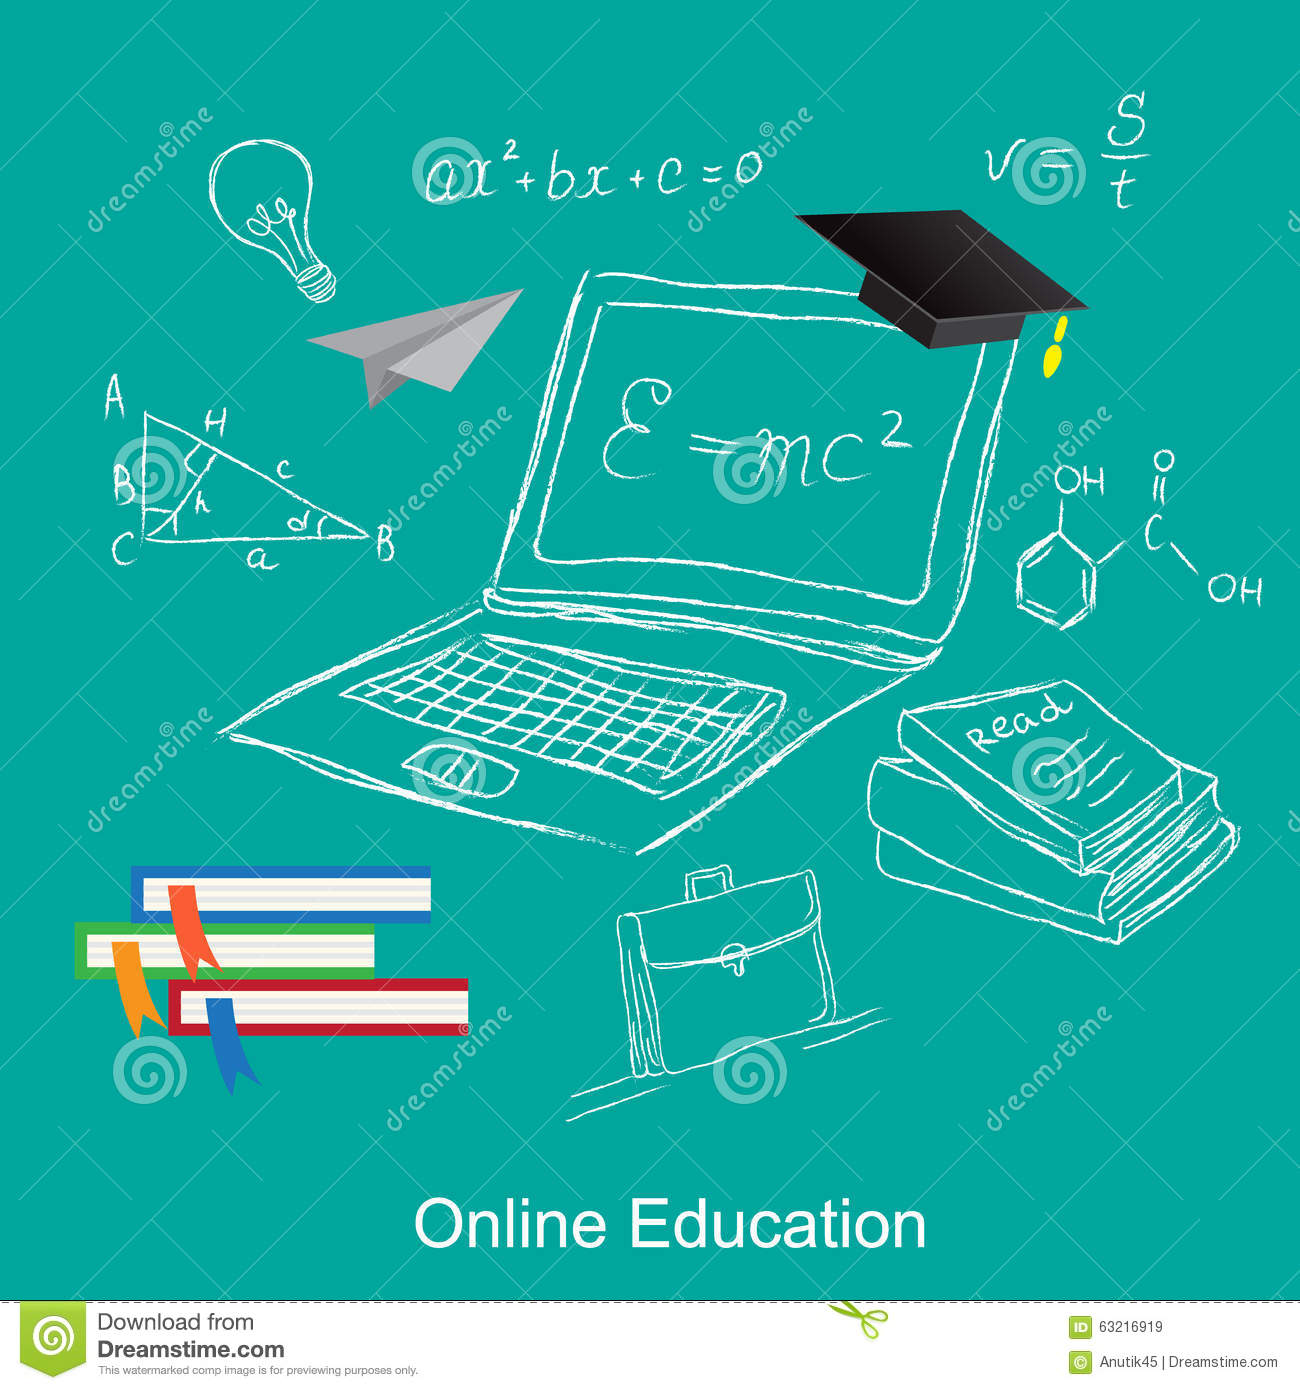 Online Education, Flat Vector Illustration, Apps, Banner, Sketch ...